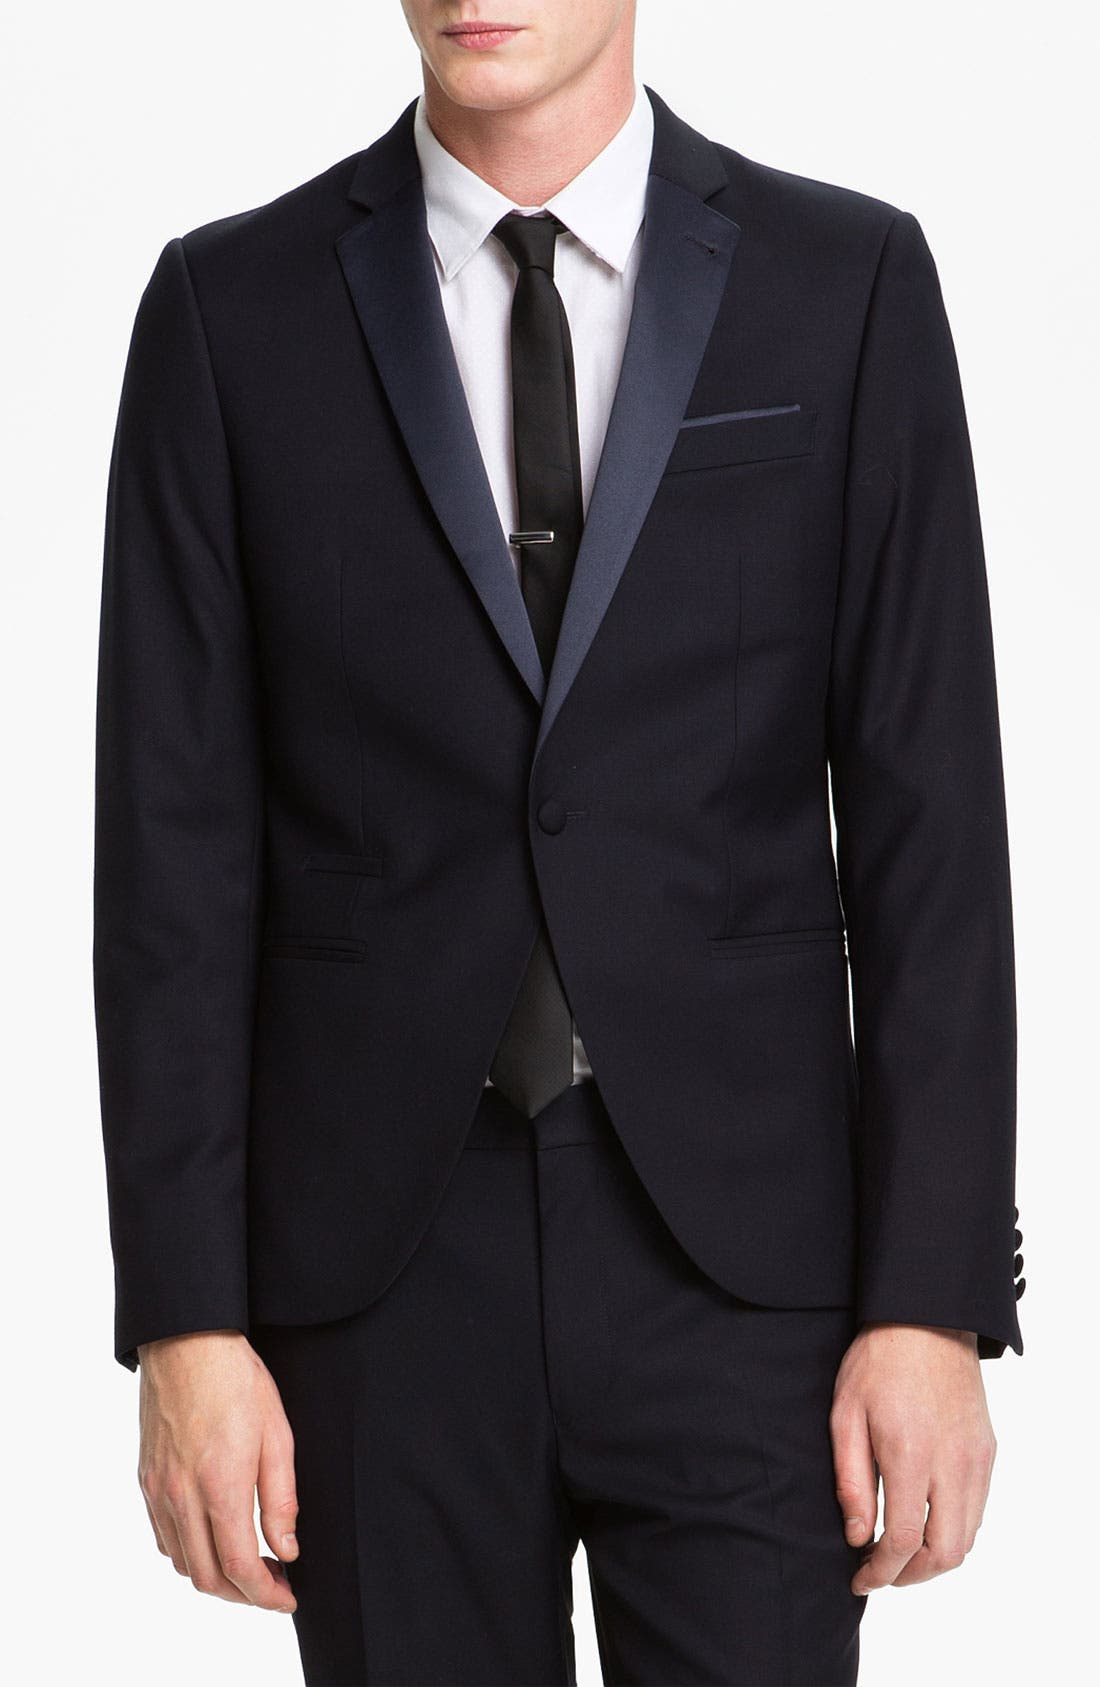 Alternate Image 1 Selected - Topman Skinny Fit Single-Button Tuxedo Jacket